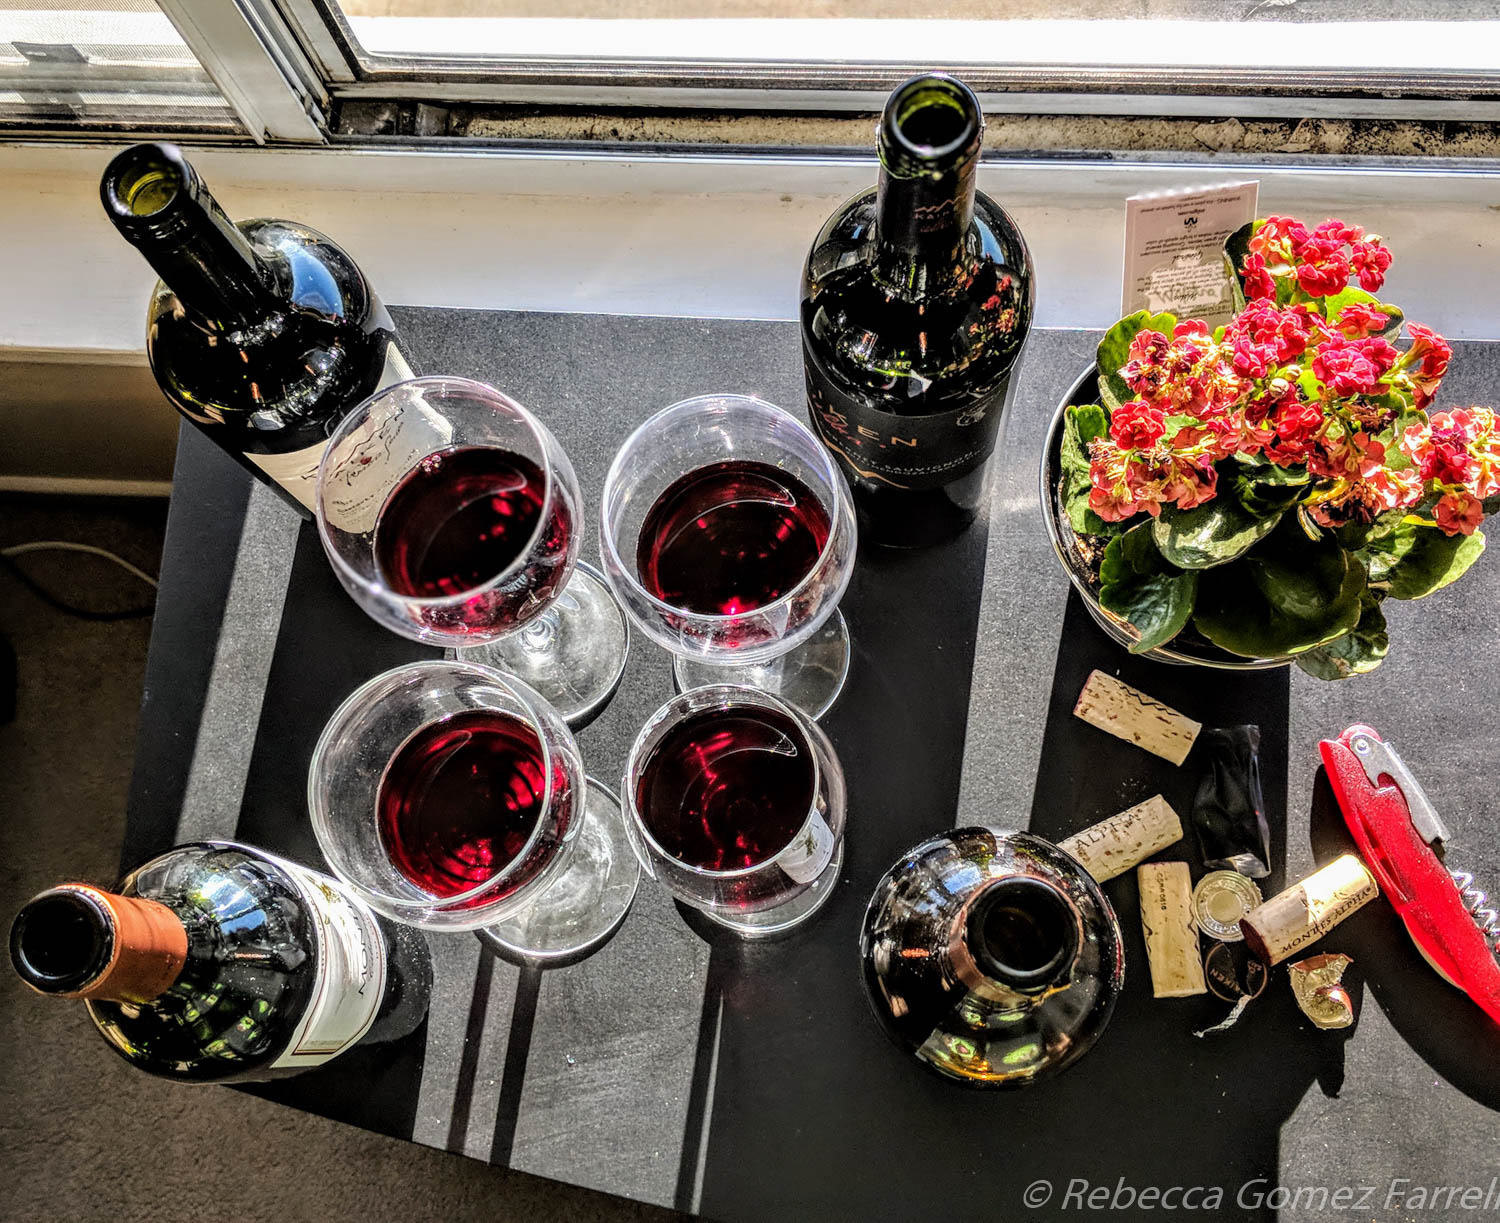 Cabernet Sauvignons from the Andes: Montes and Kaiken